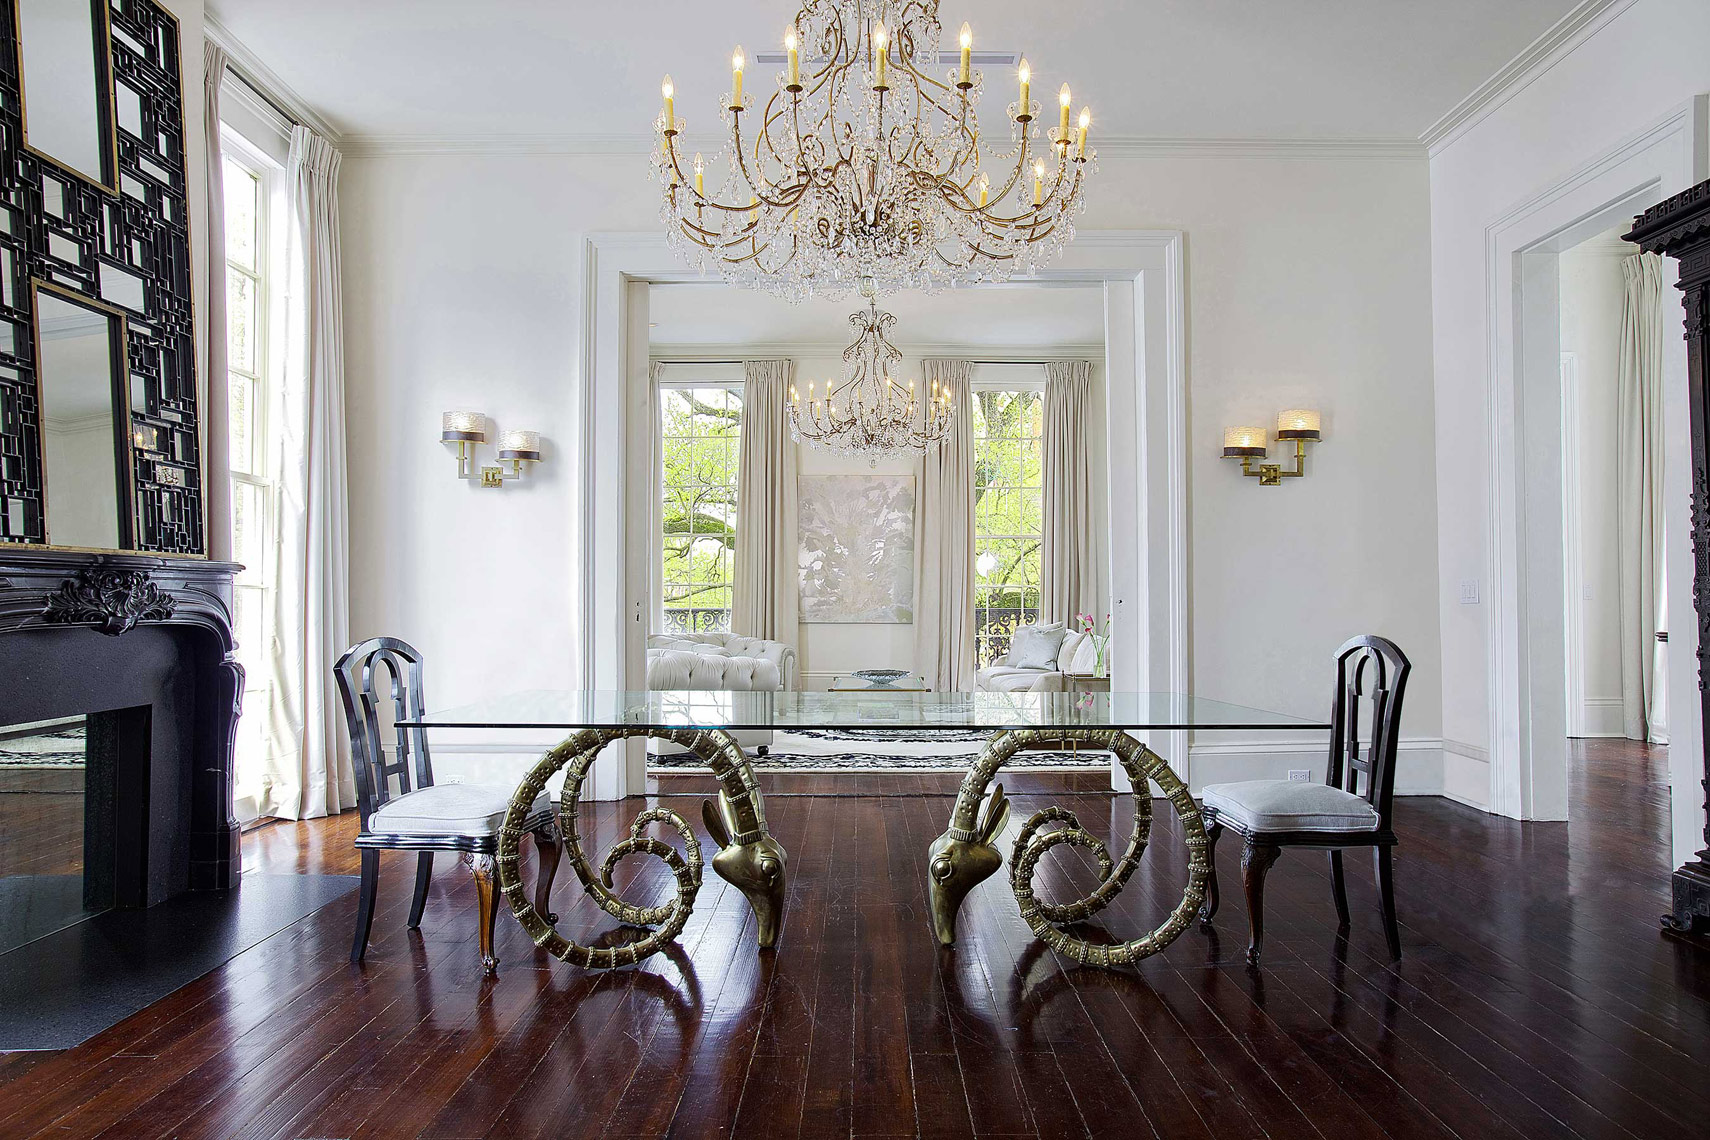 Traditional interior design NY photographer in new orleans. Interior Photographer